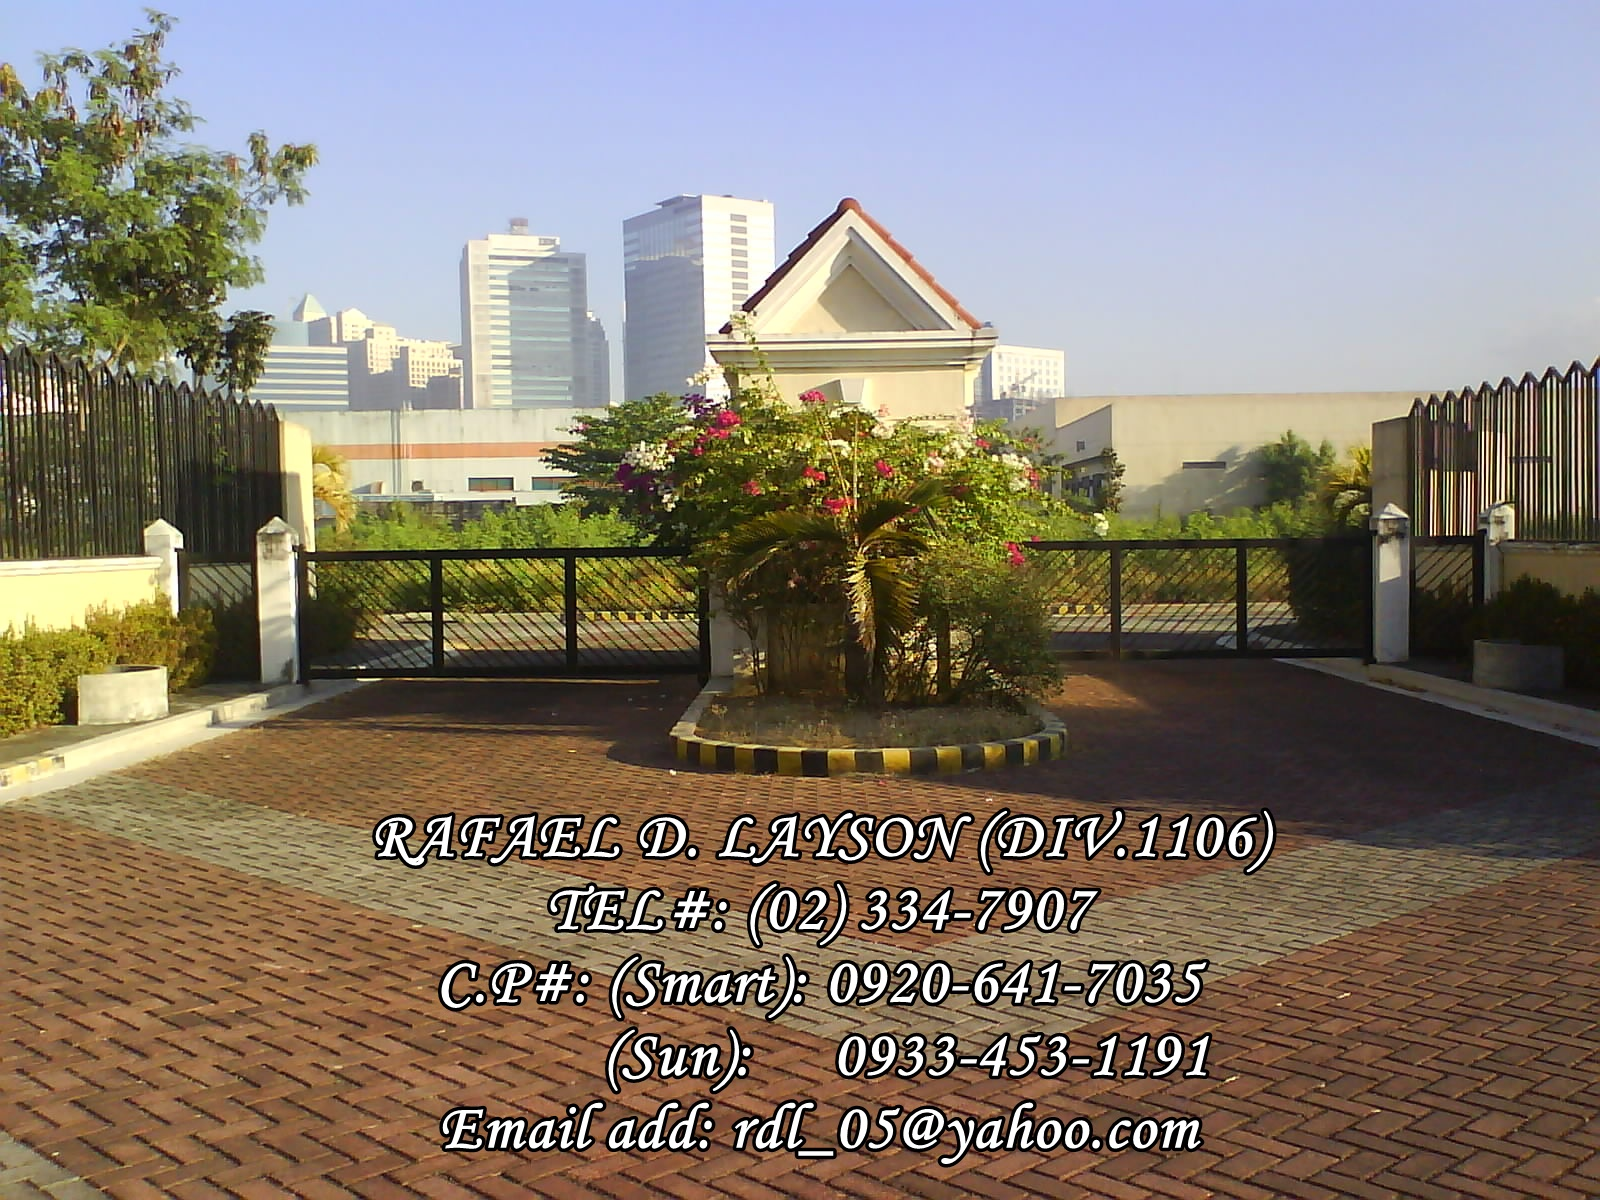 FOR SALE: Office / Commercial / Industrial Manila Metropolitan Area > Quezon 1